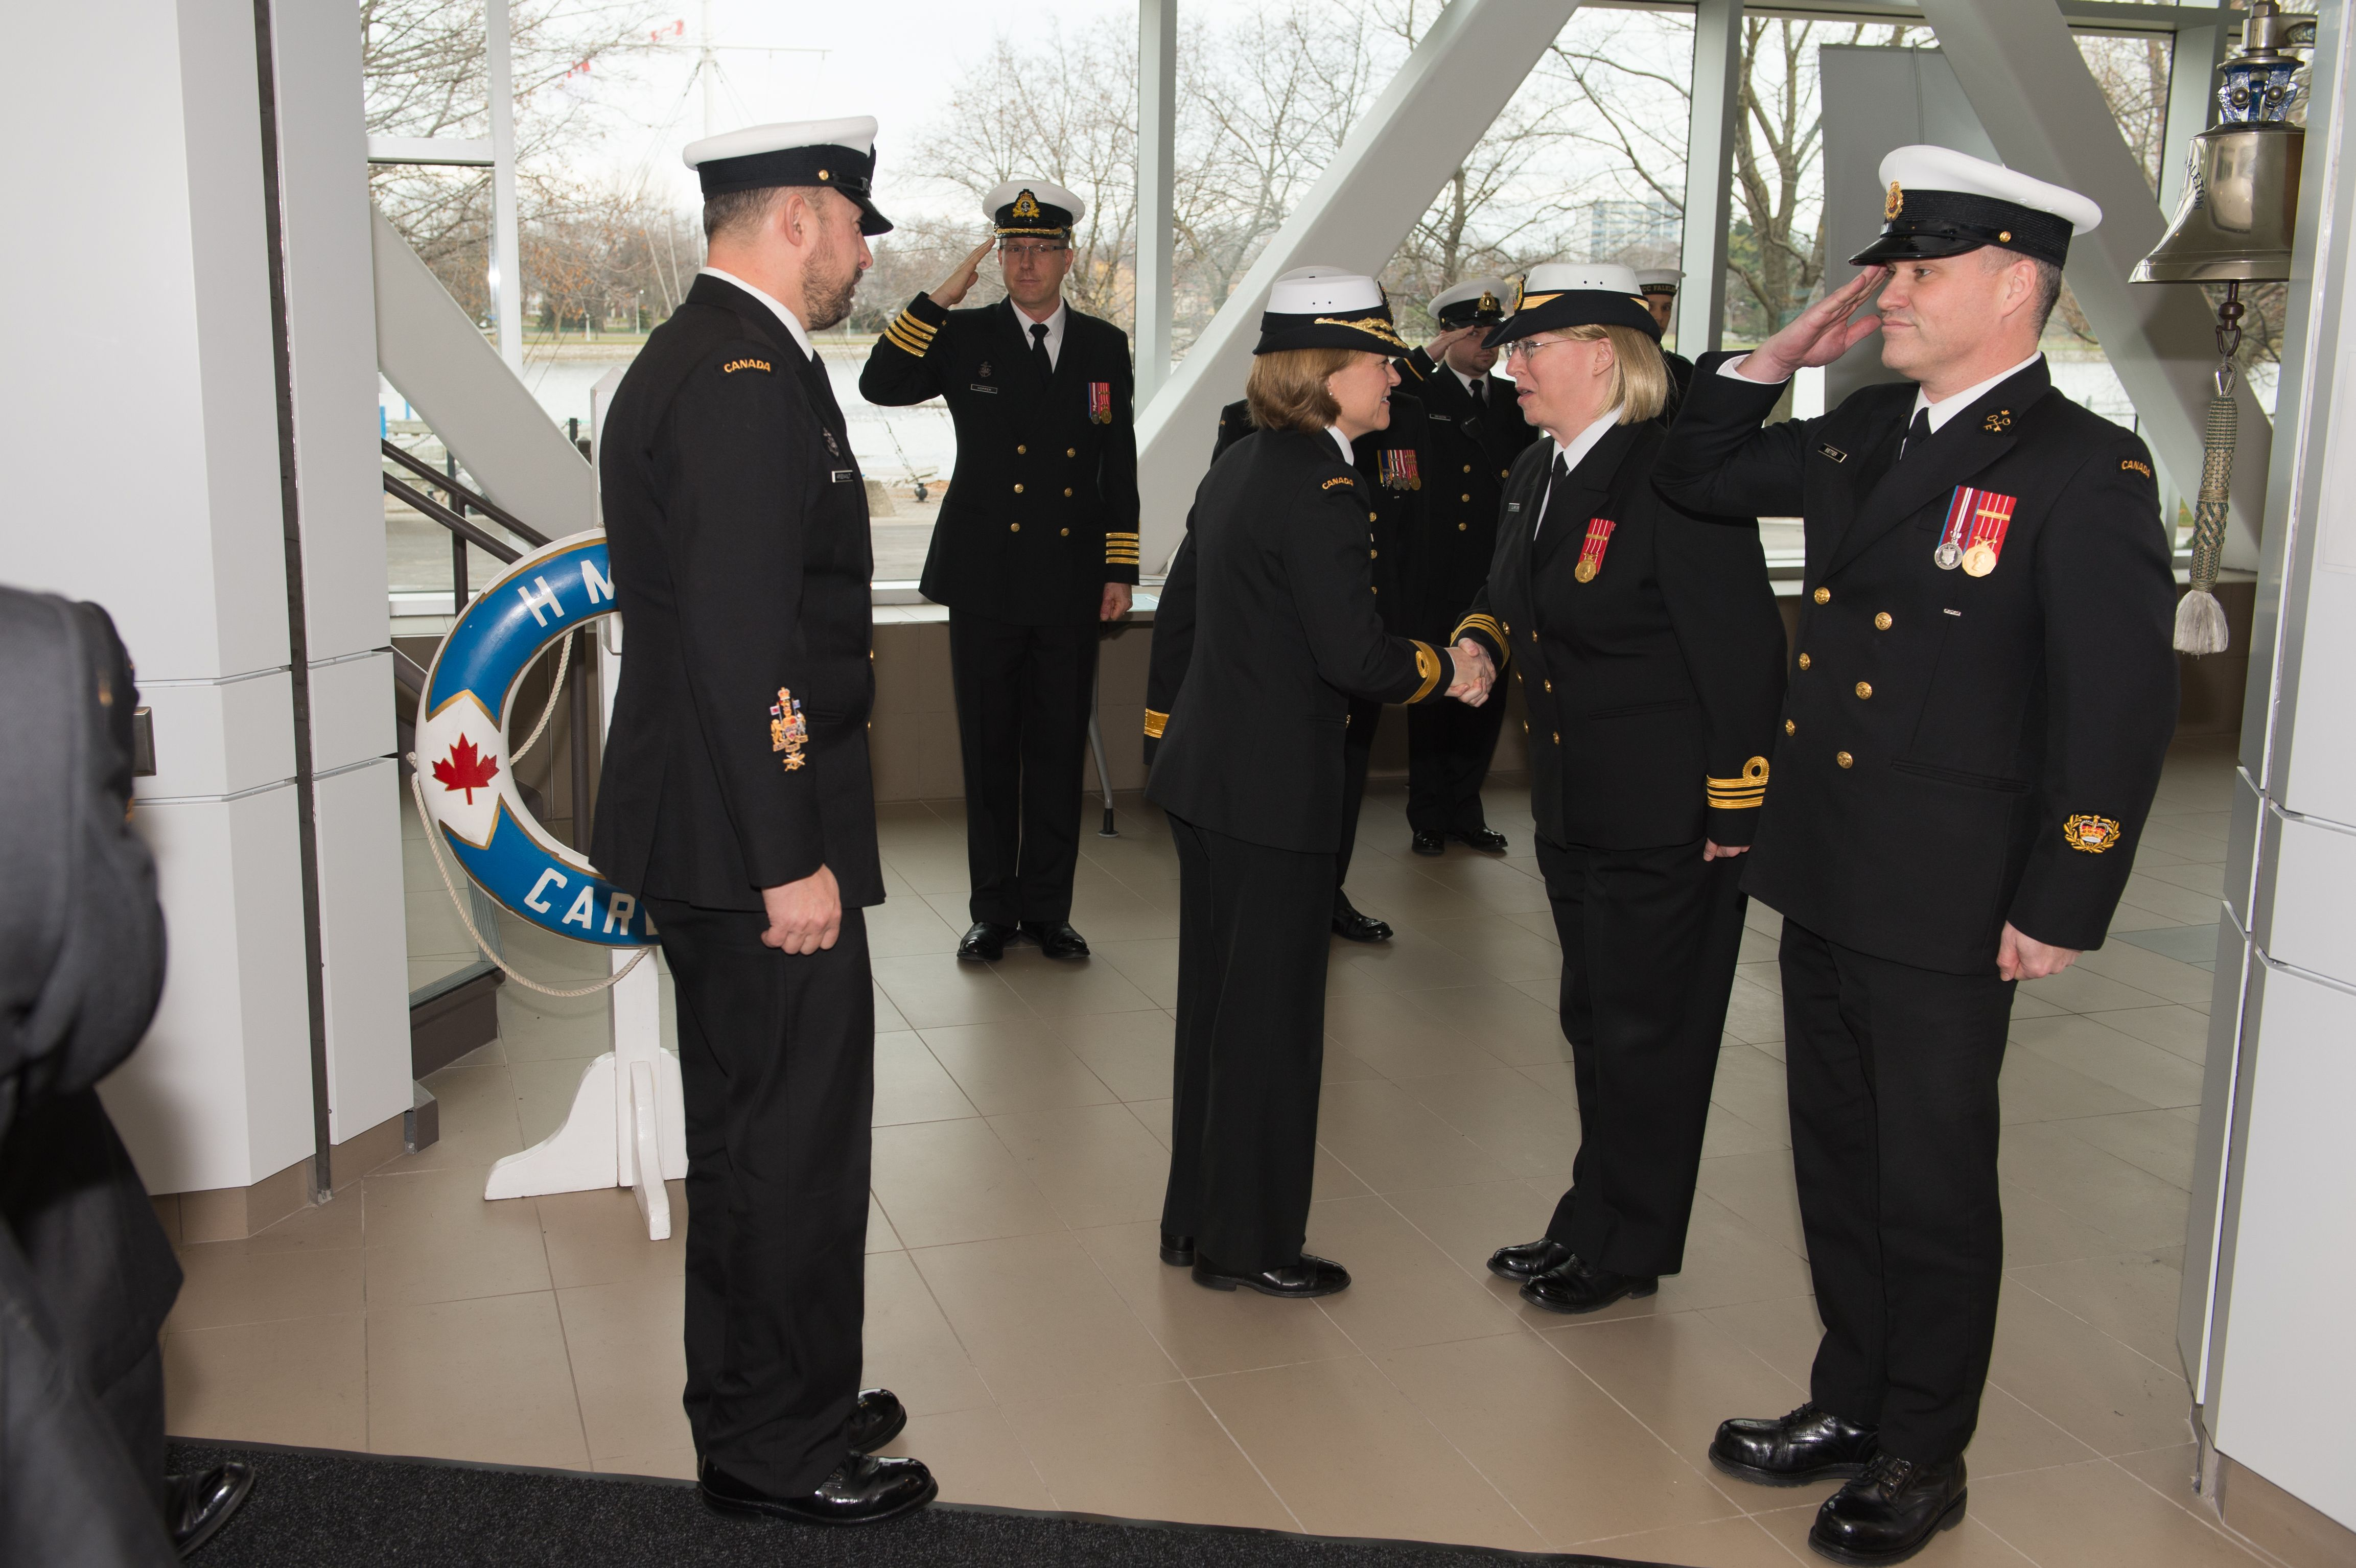 Commodore Marta Mulkins is welcomed by the commanding officer of HMCS Carleton, LCdr Carmen Lapointe, for the inauguration.